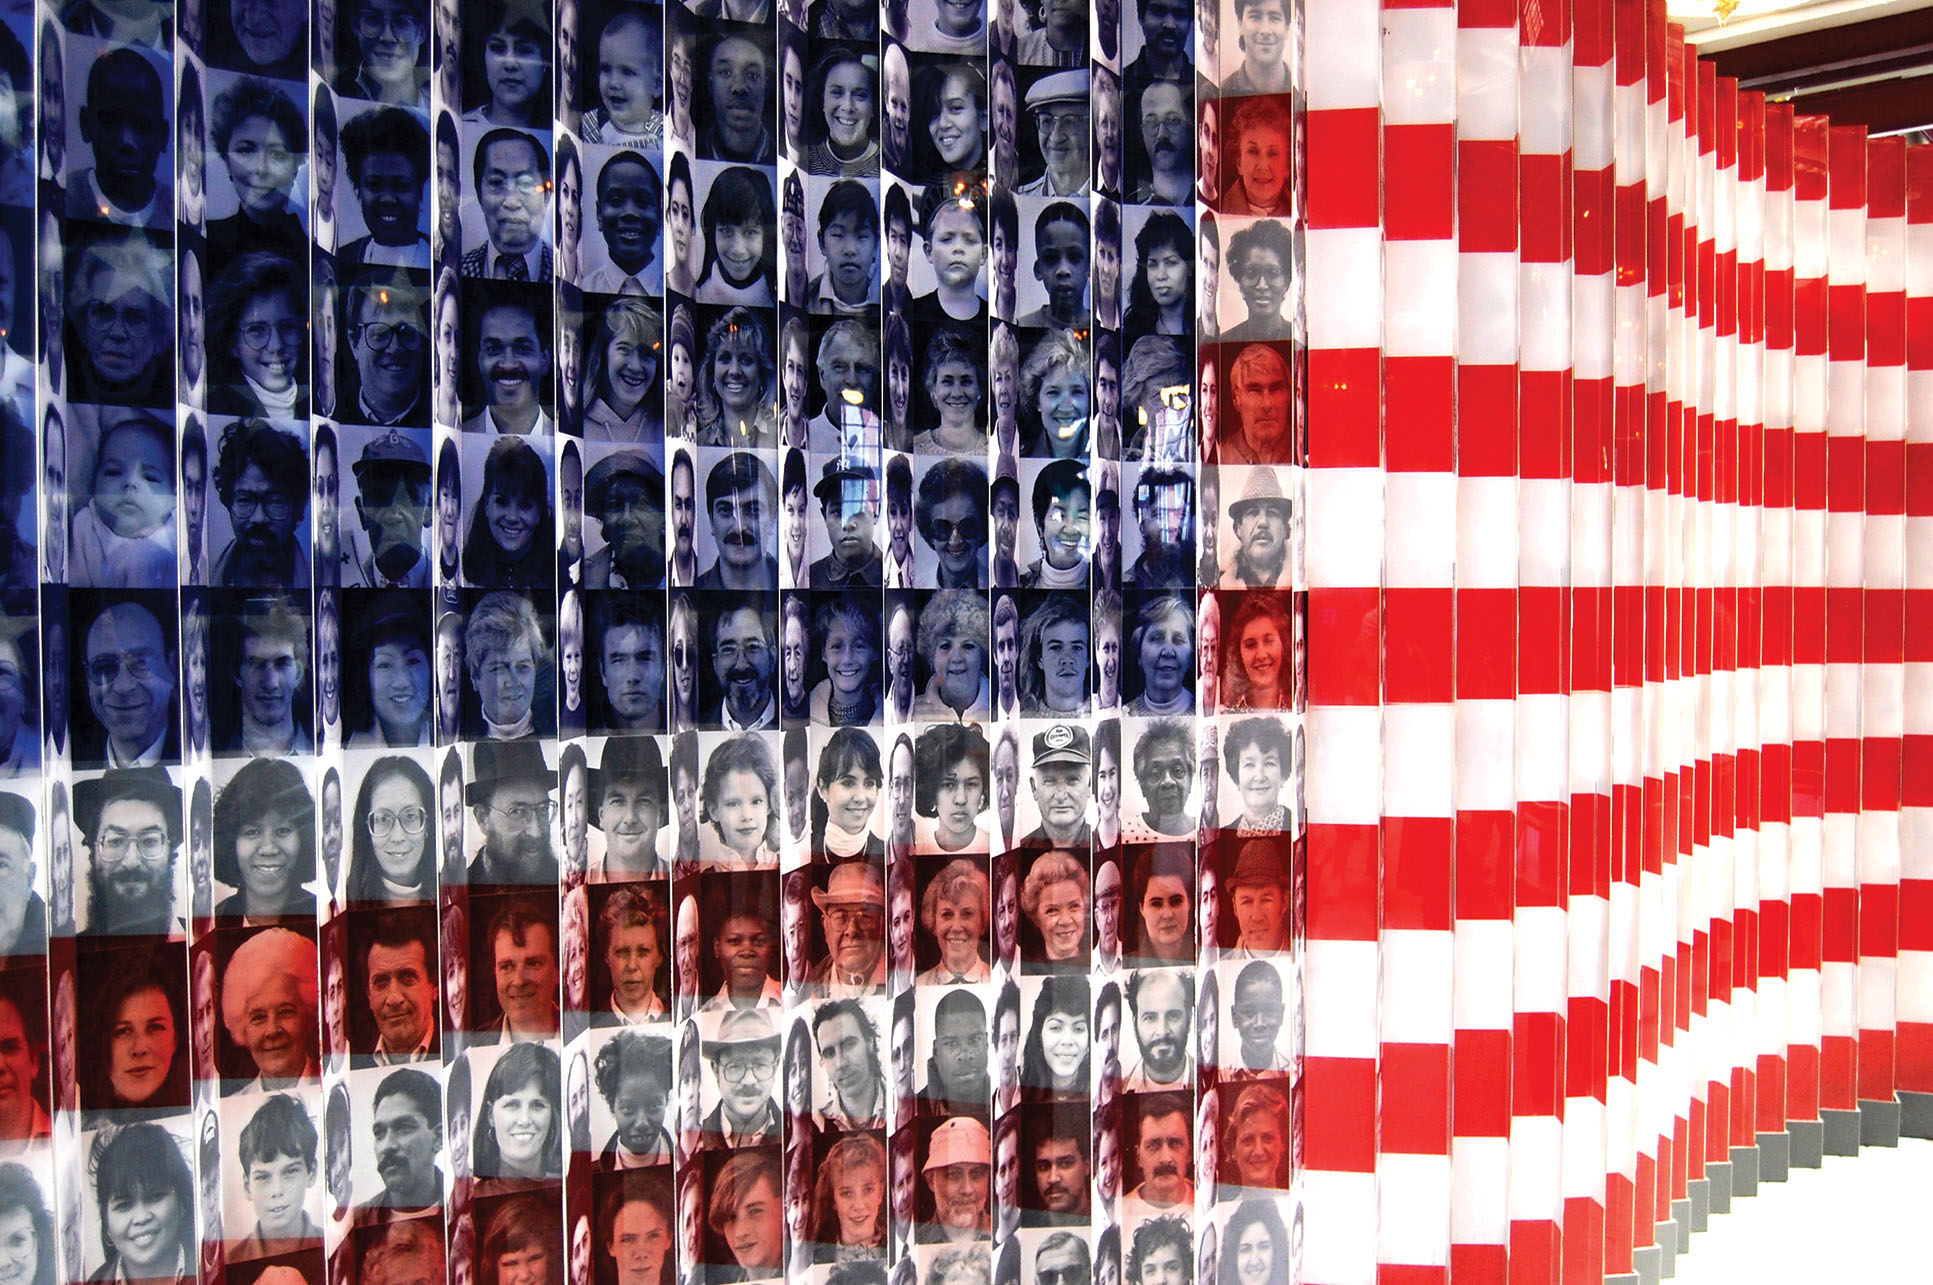 An American flag with the faces of immigrants used to form part of the design on display at Ellis Island. (Photo by Ludovic Bertron.)